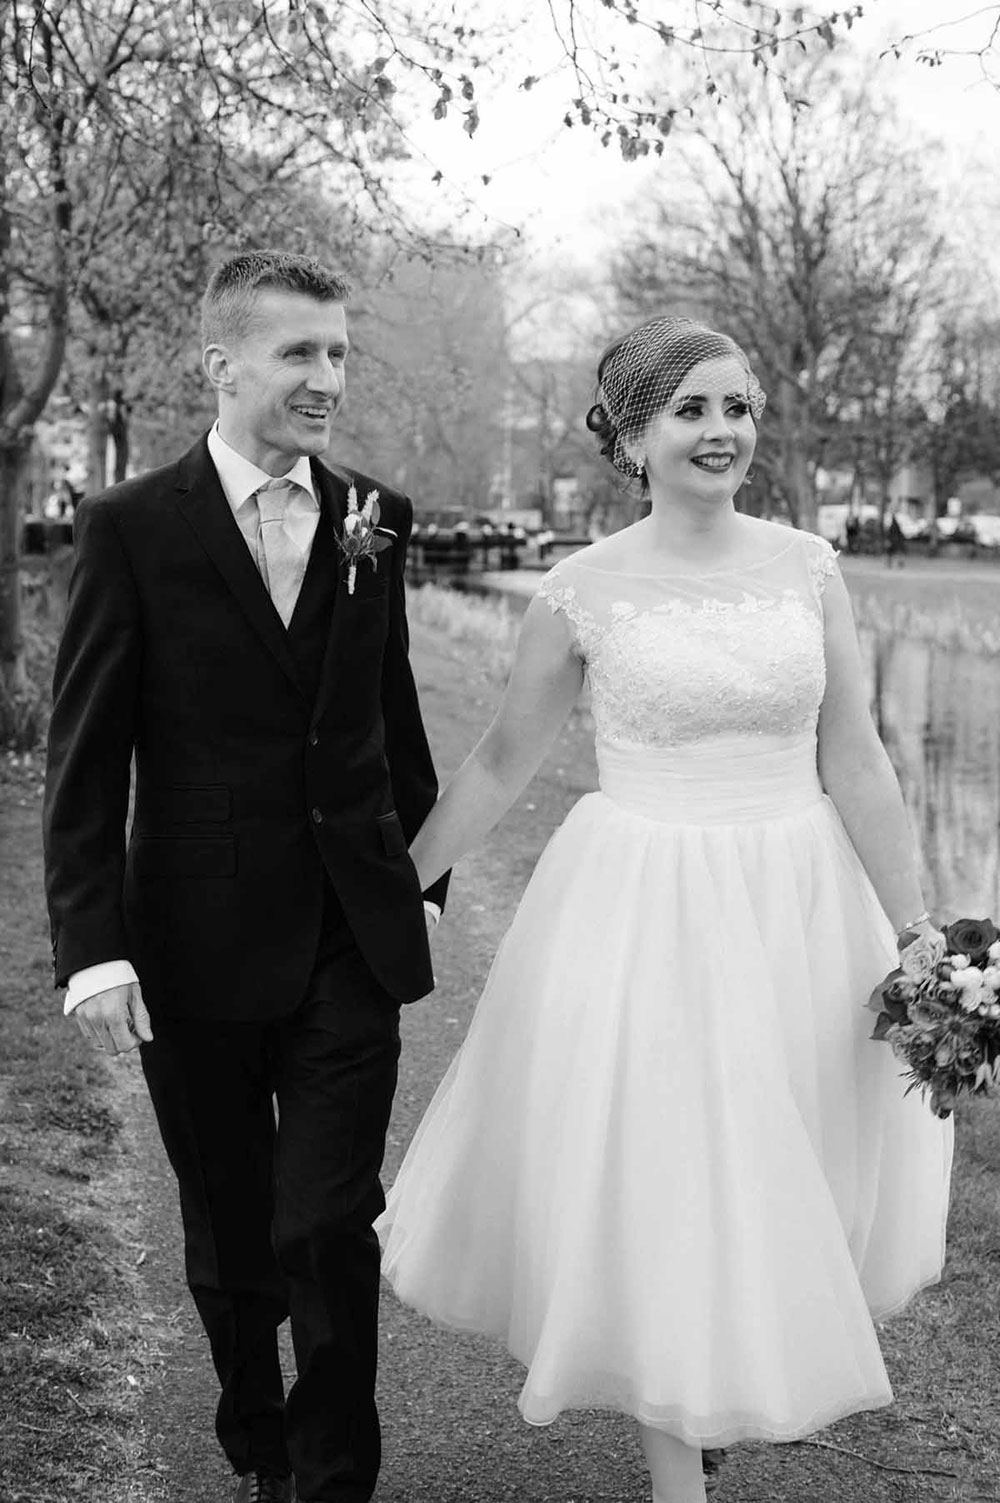 A Registry Office Wedding Photo on the banks of the Grand Canal in Dublin